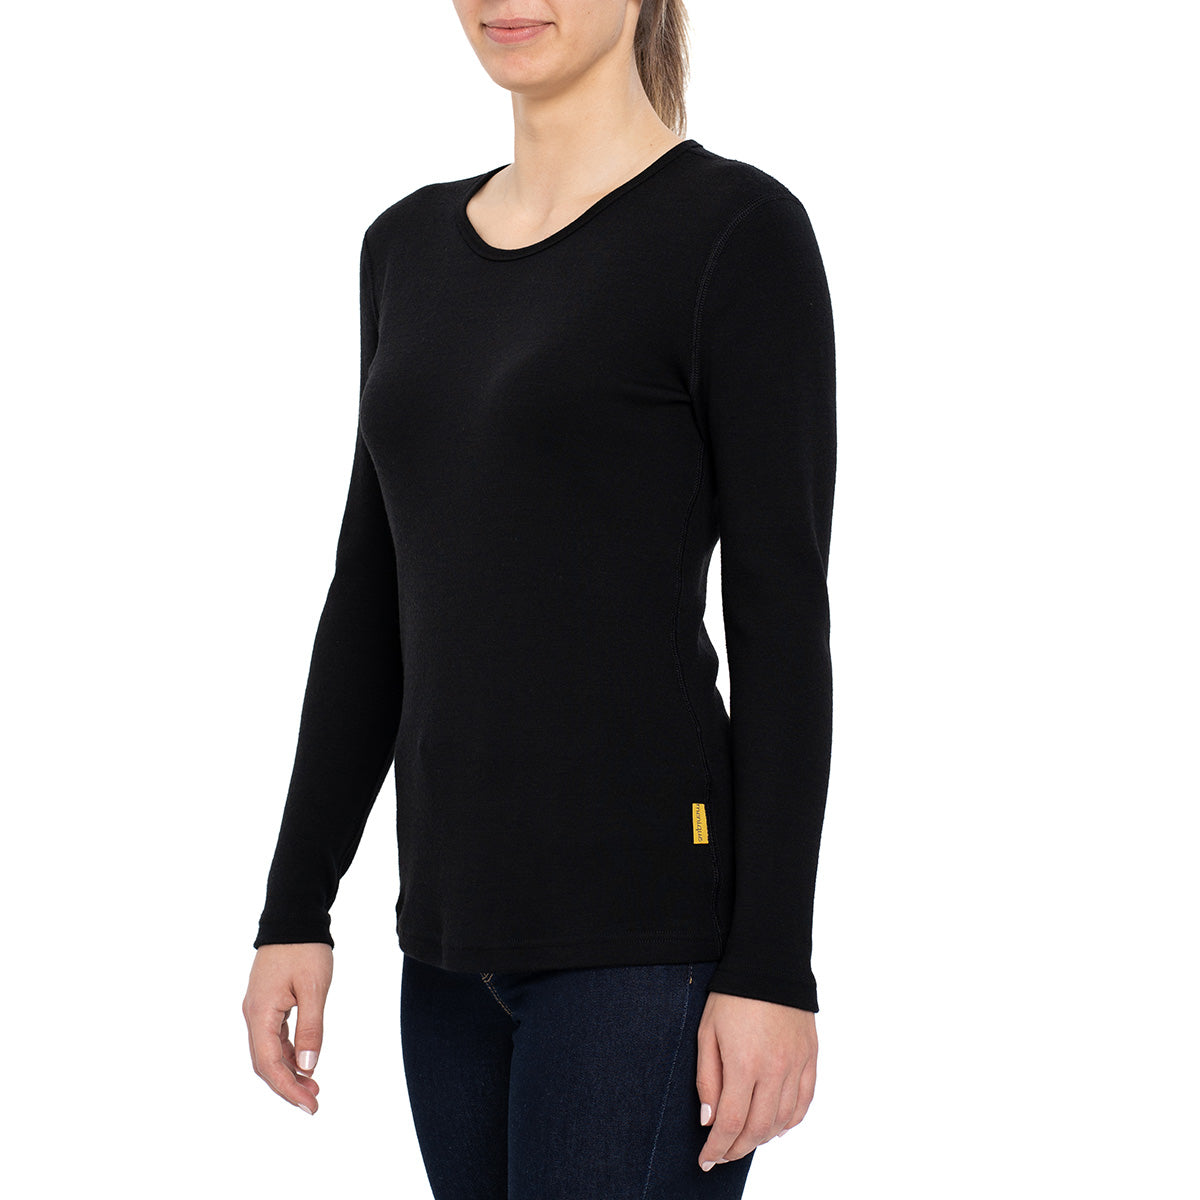 menique Women's Merino 250 Long Sleeve Crew Black Color